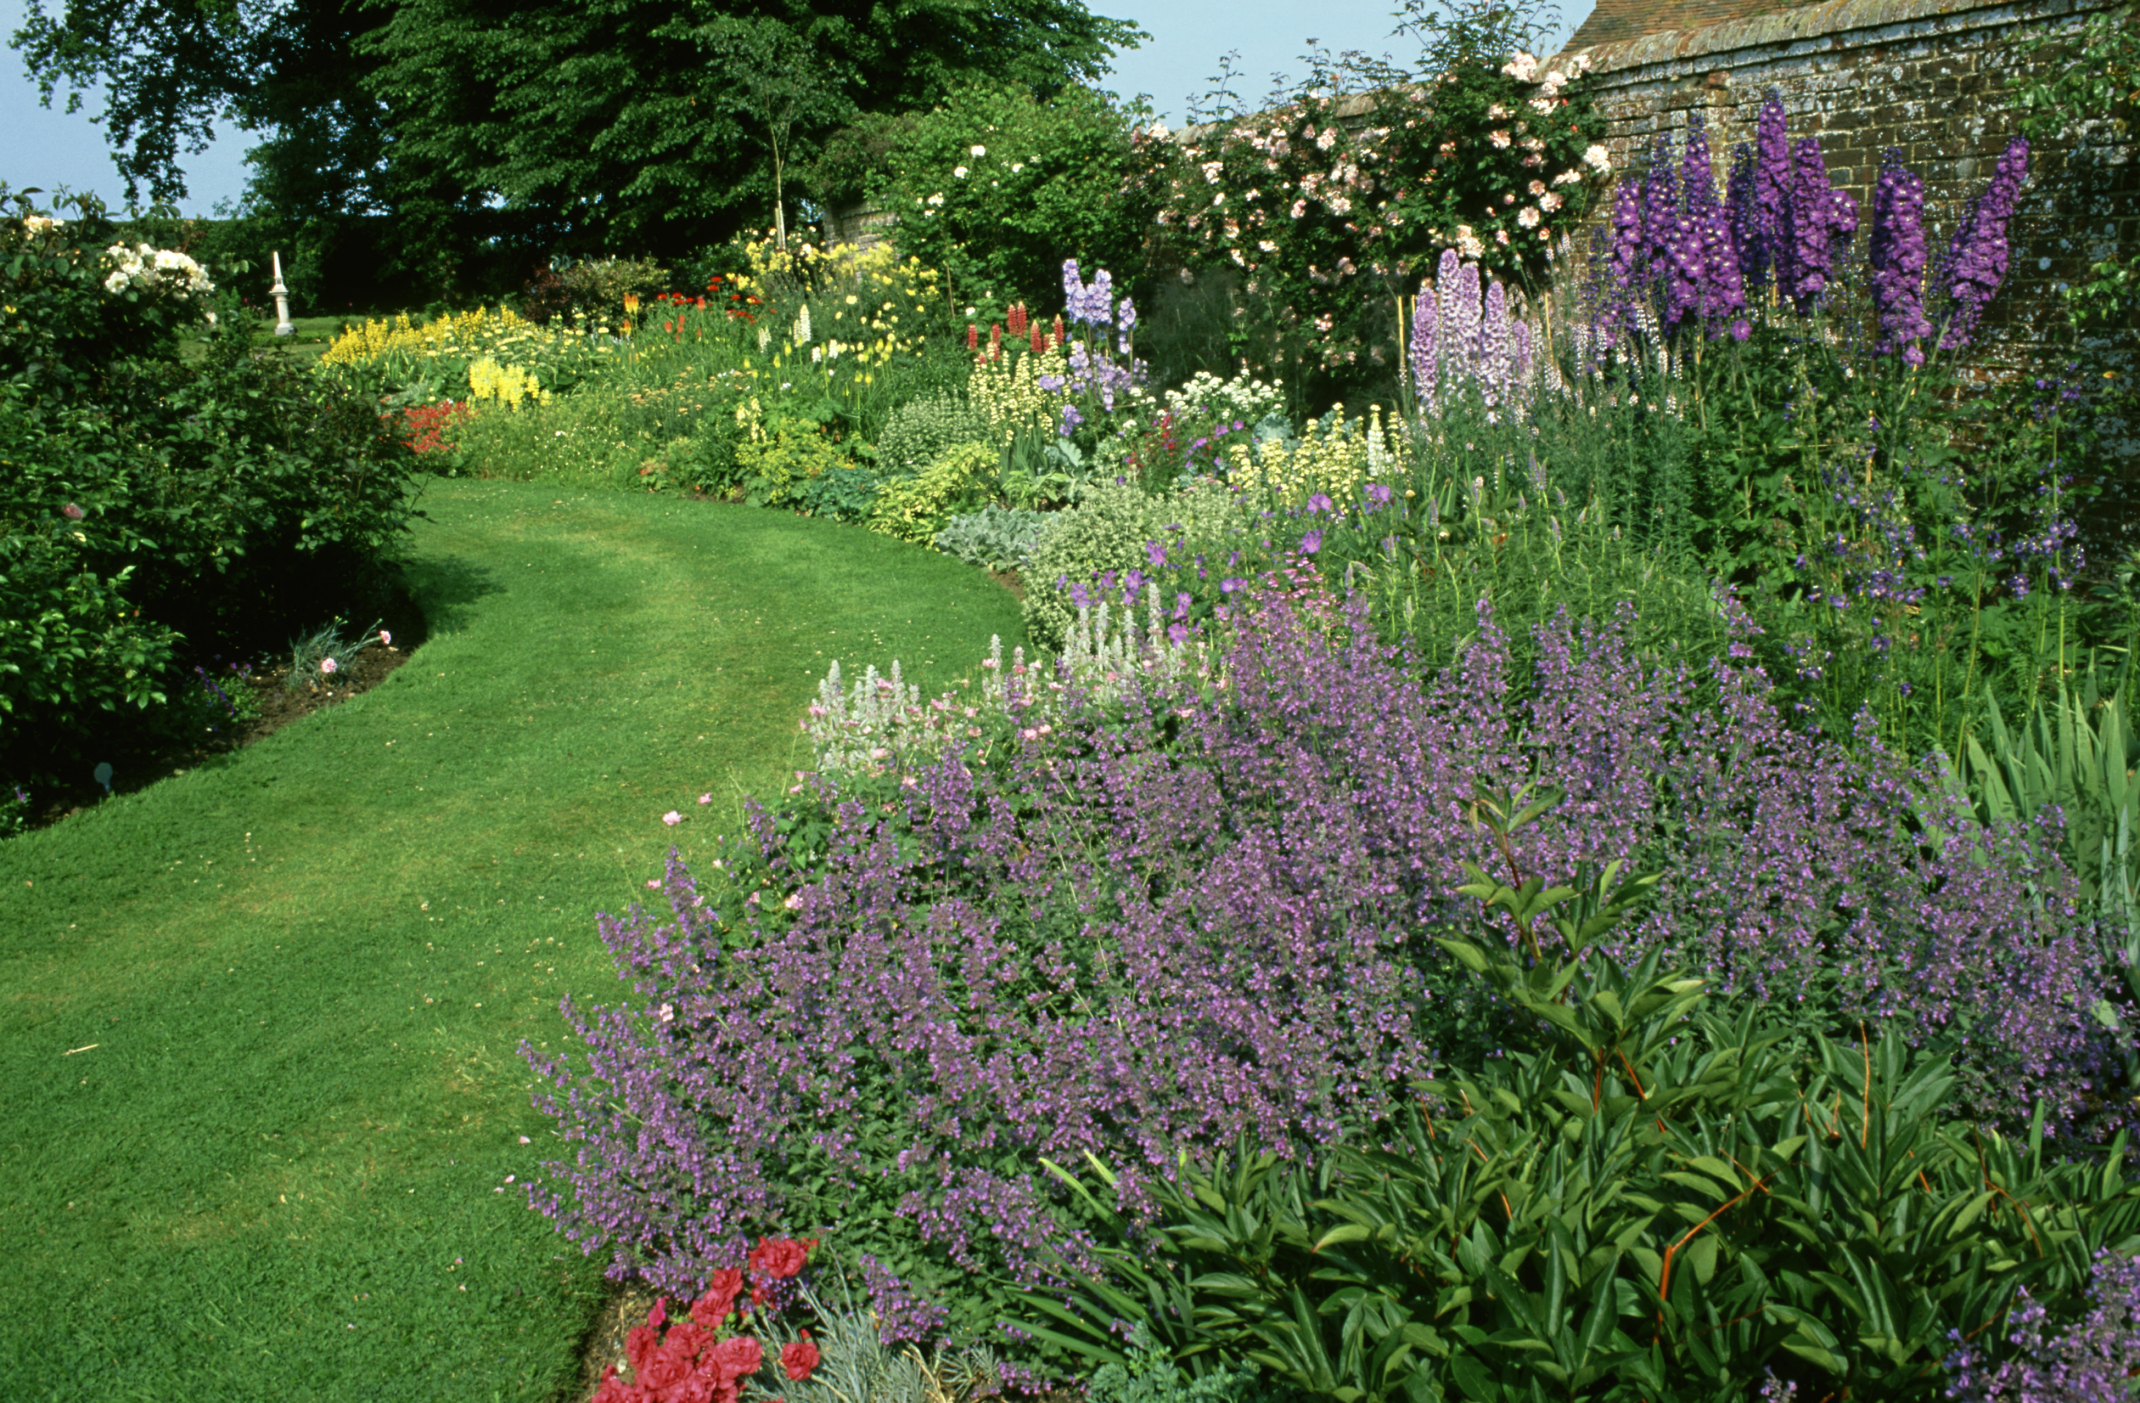 Flower garden design ideas - Flower Garden Design Ideas 38